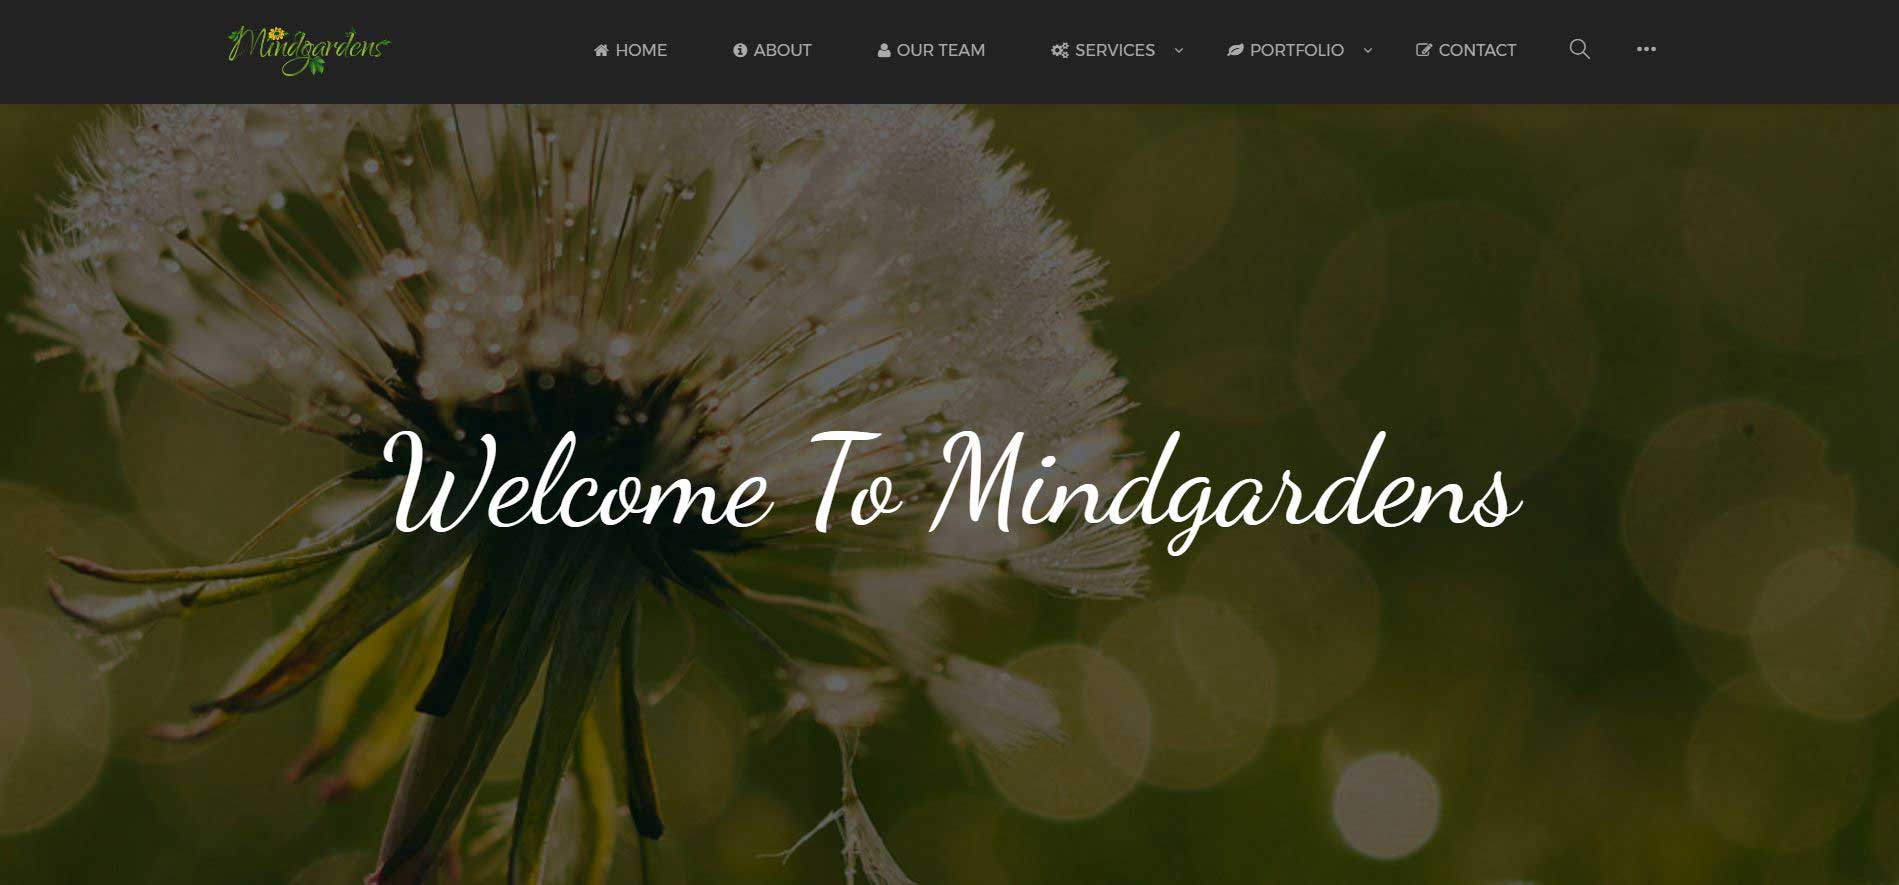 Mindgardens Creative Services Site Design